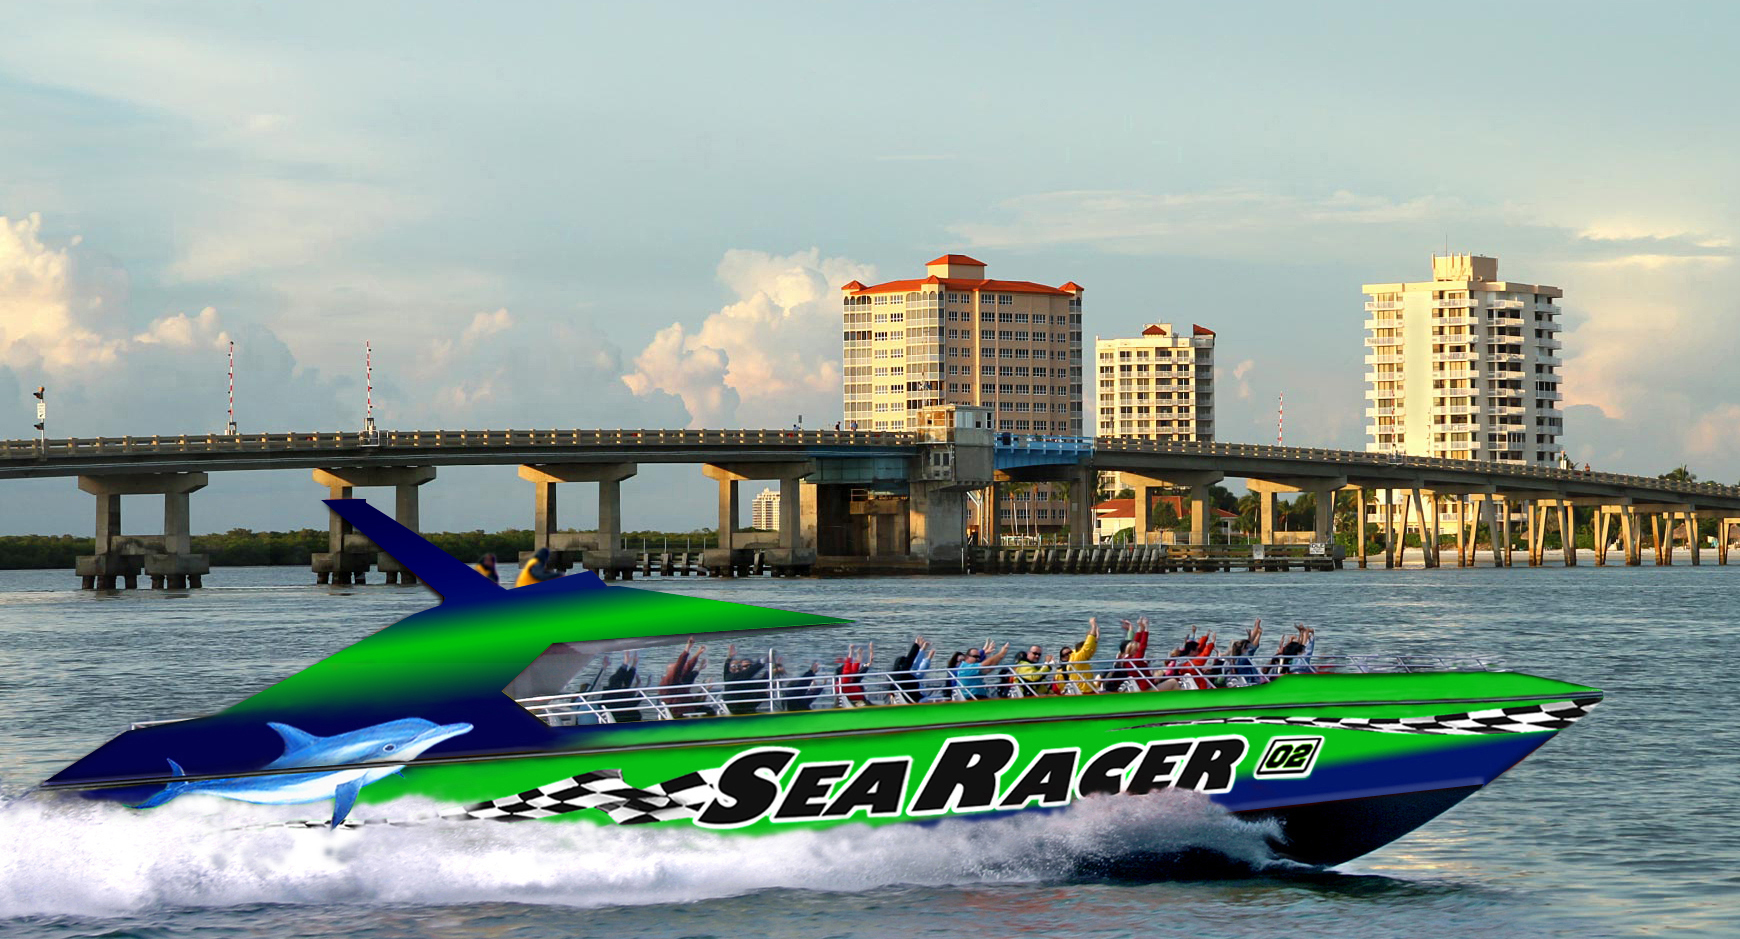 Sea Racer narrated tour of Fort Myers Beach